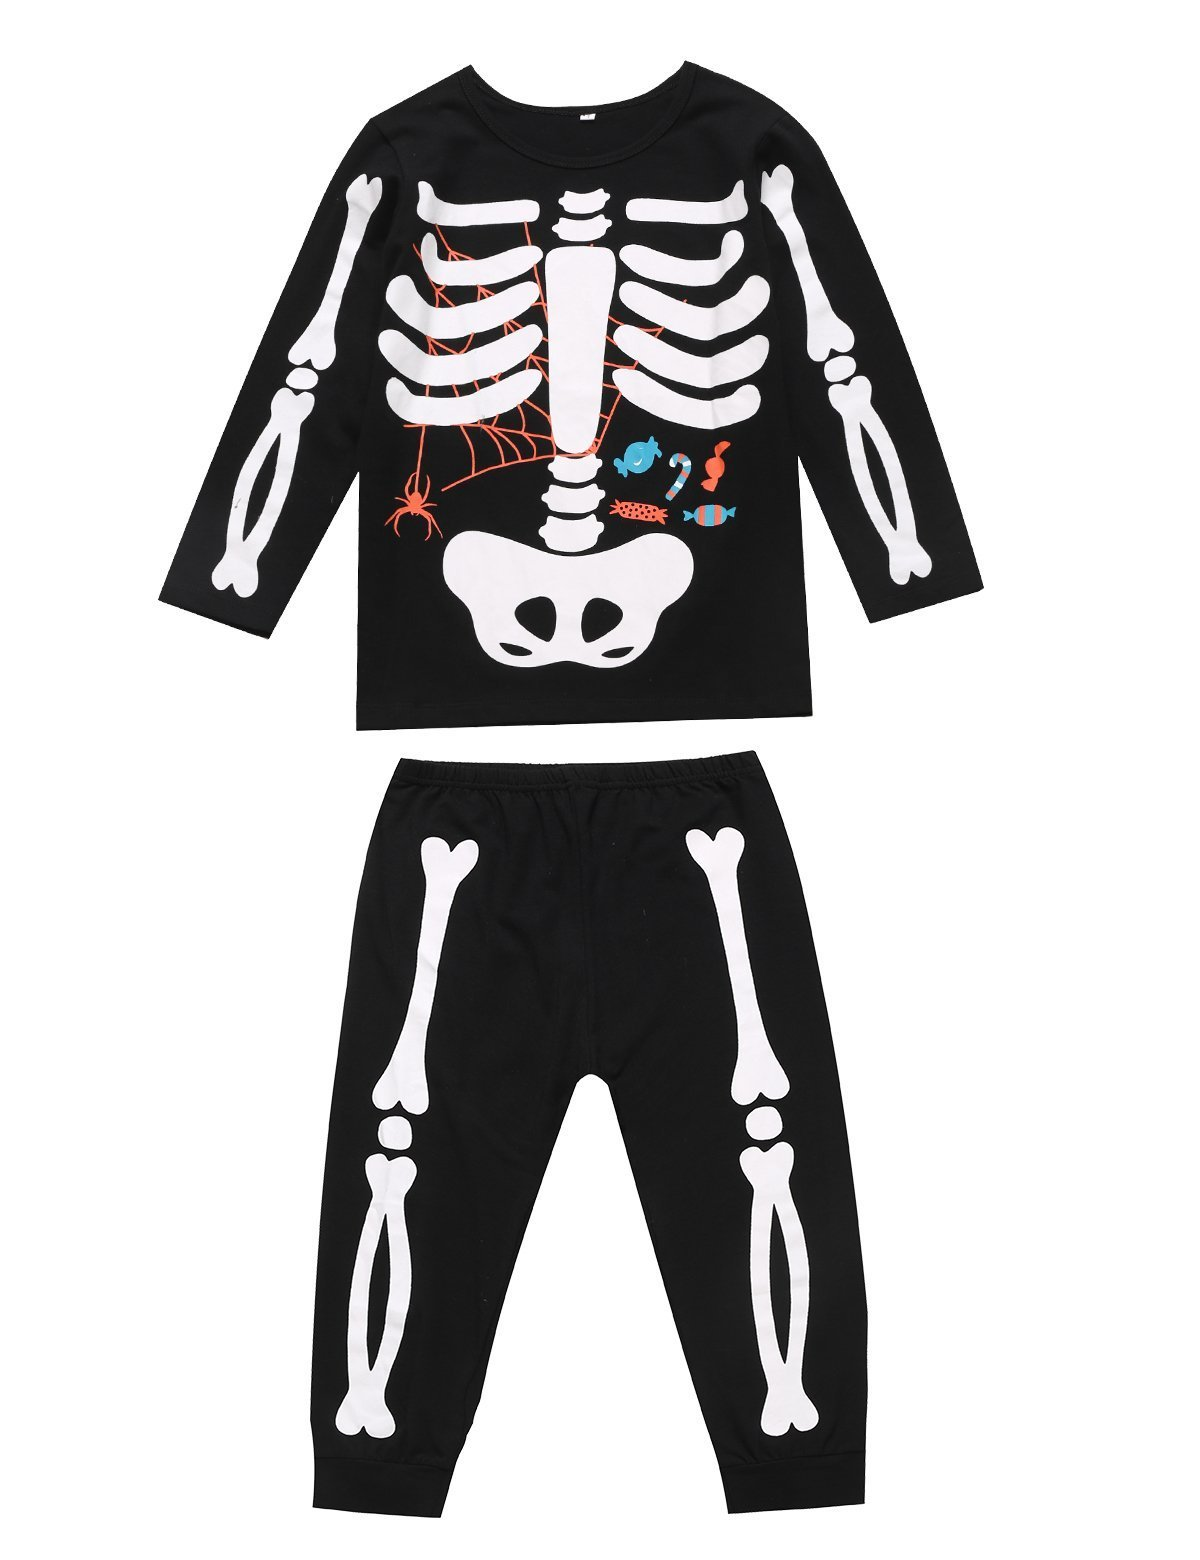 Unisex Boys Girls Kids Halloween Pajama Skeleton Costume Outfit Pants Set (5, Black)